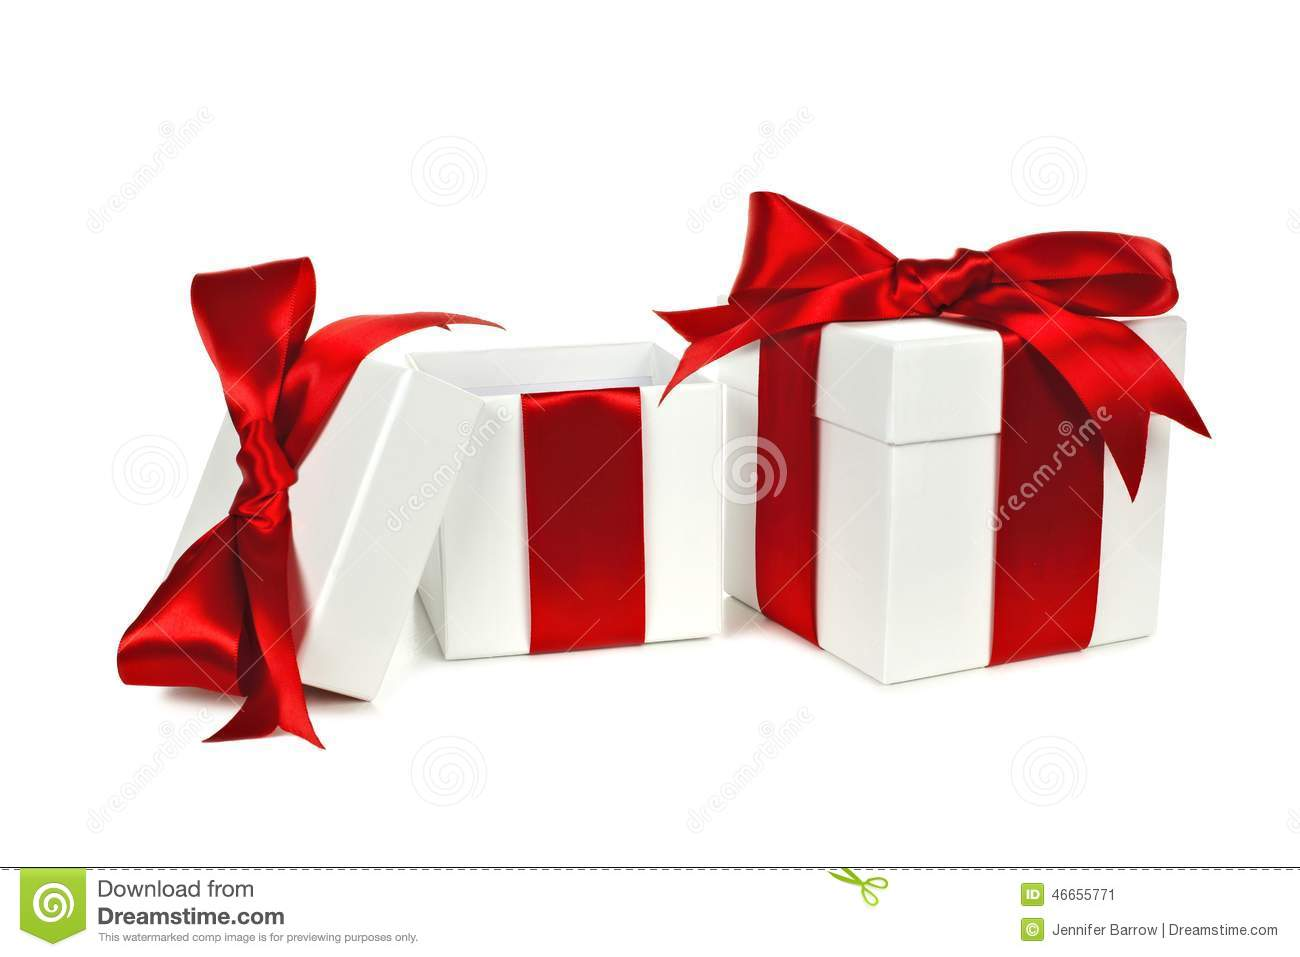 Opened White And Red Gift Boxes Stock Photo - Image: 46655771